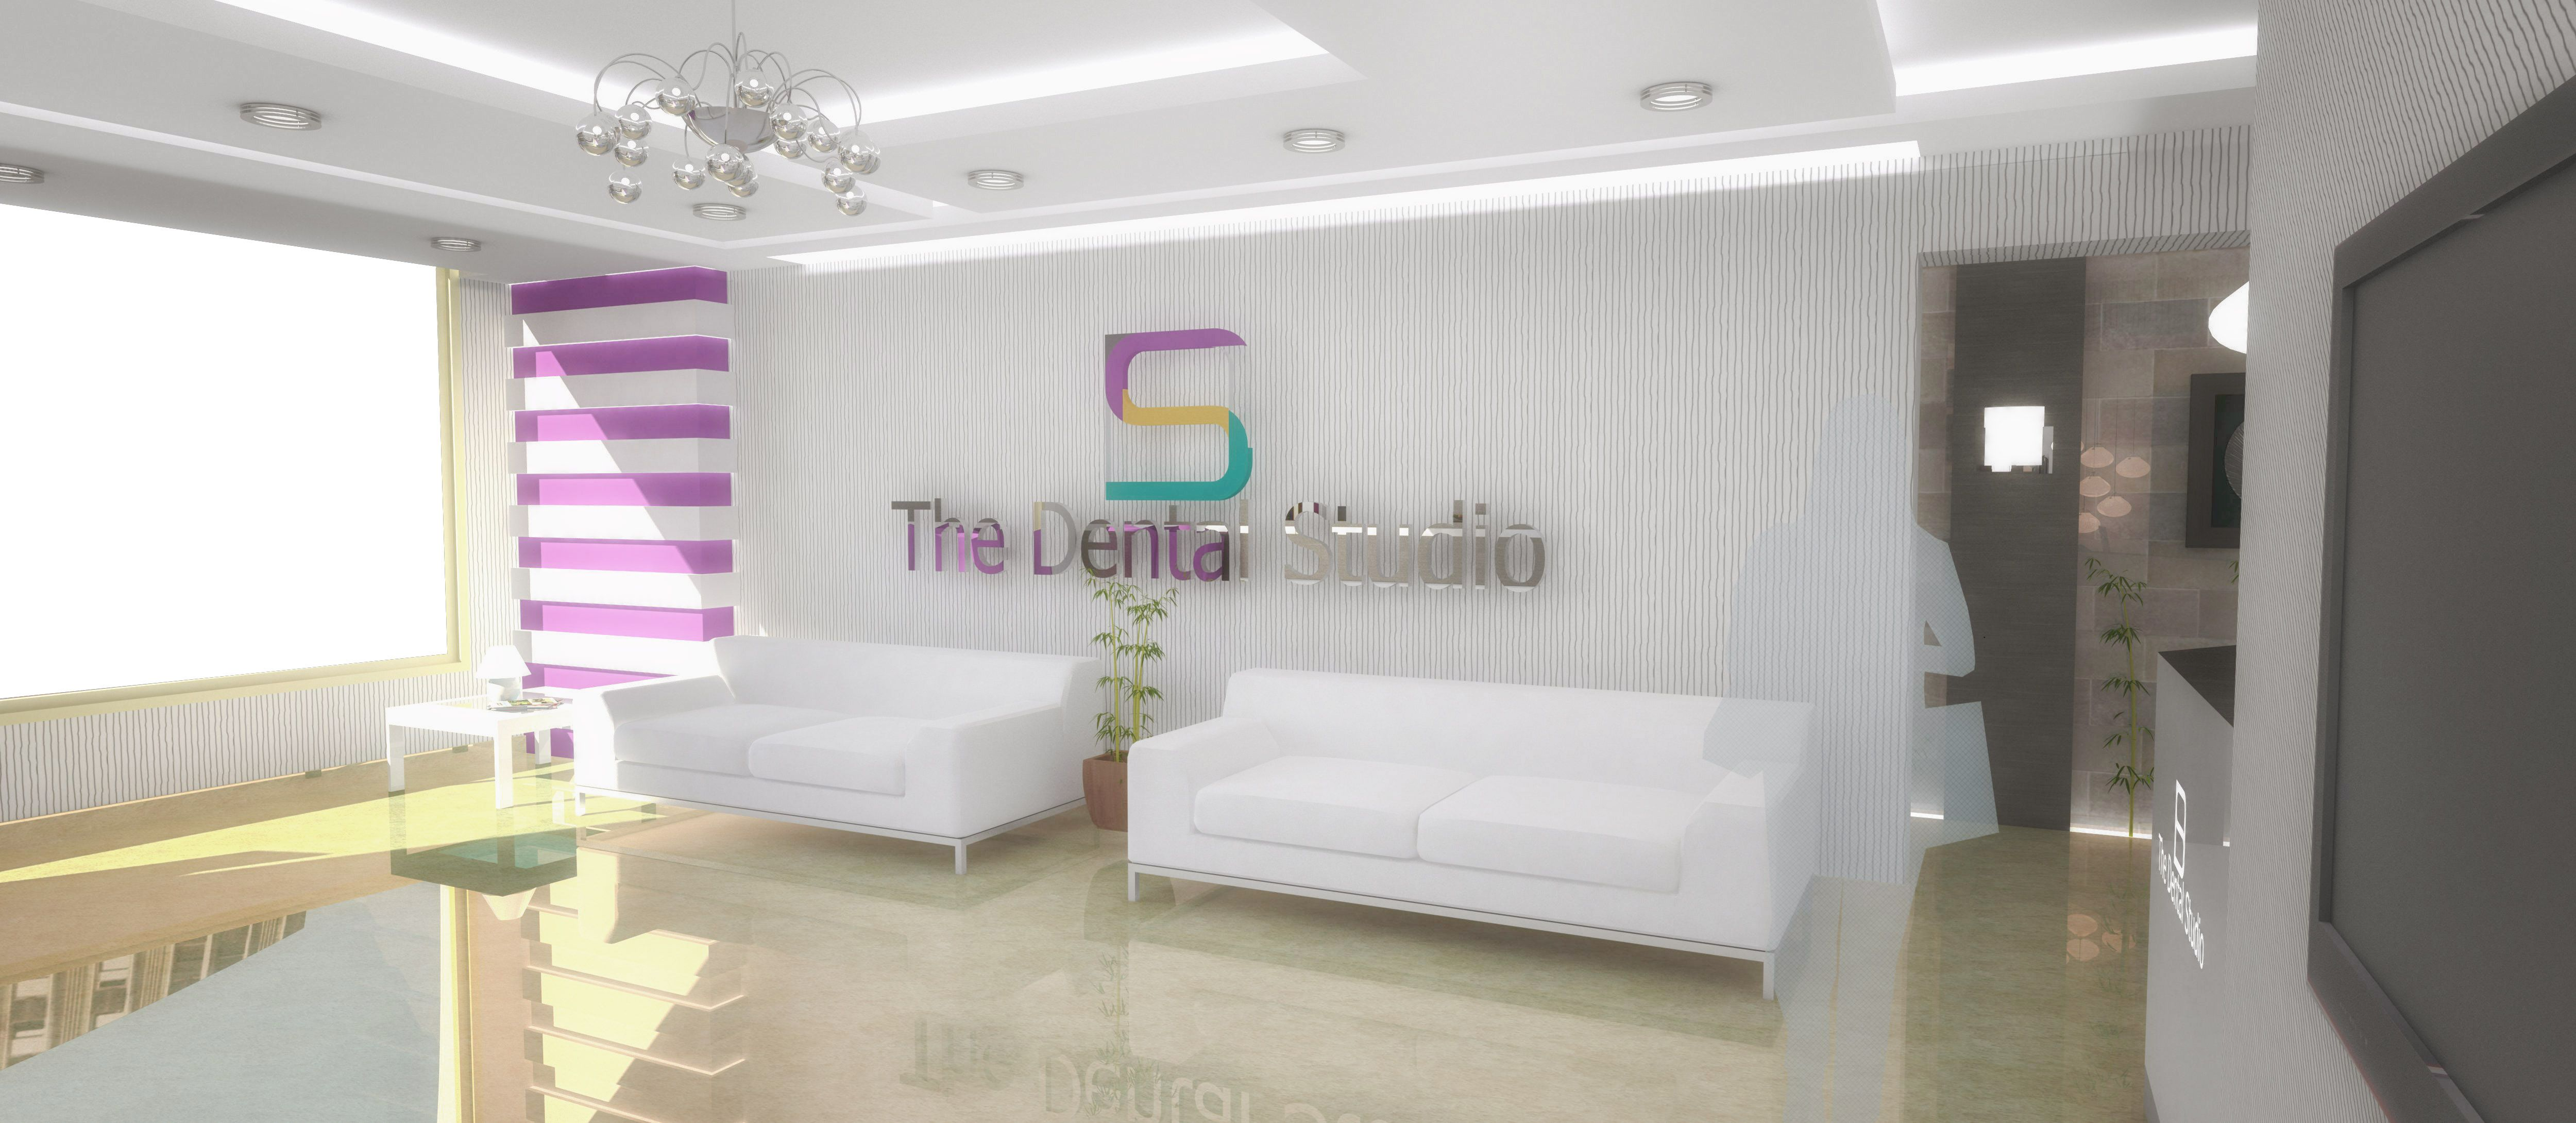 contemporary clinic decor interior design for dental clinic maadi